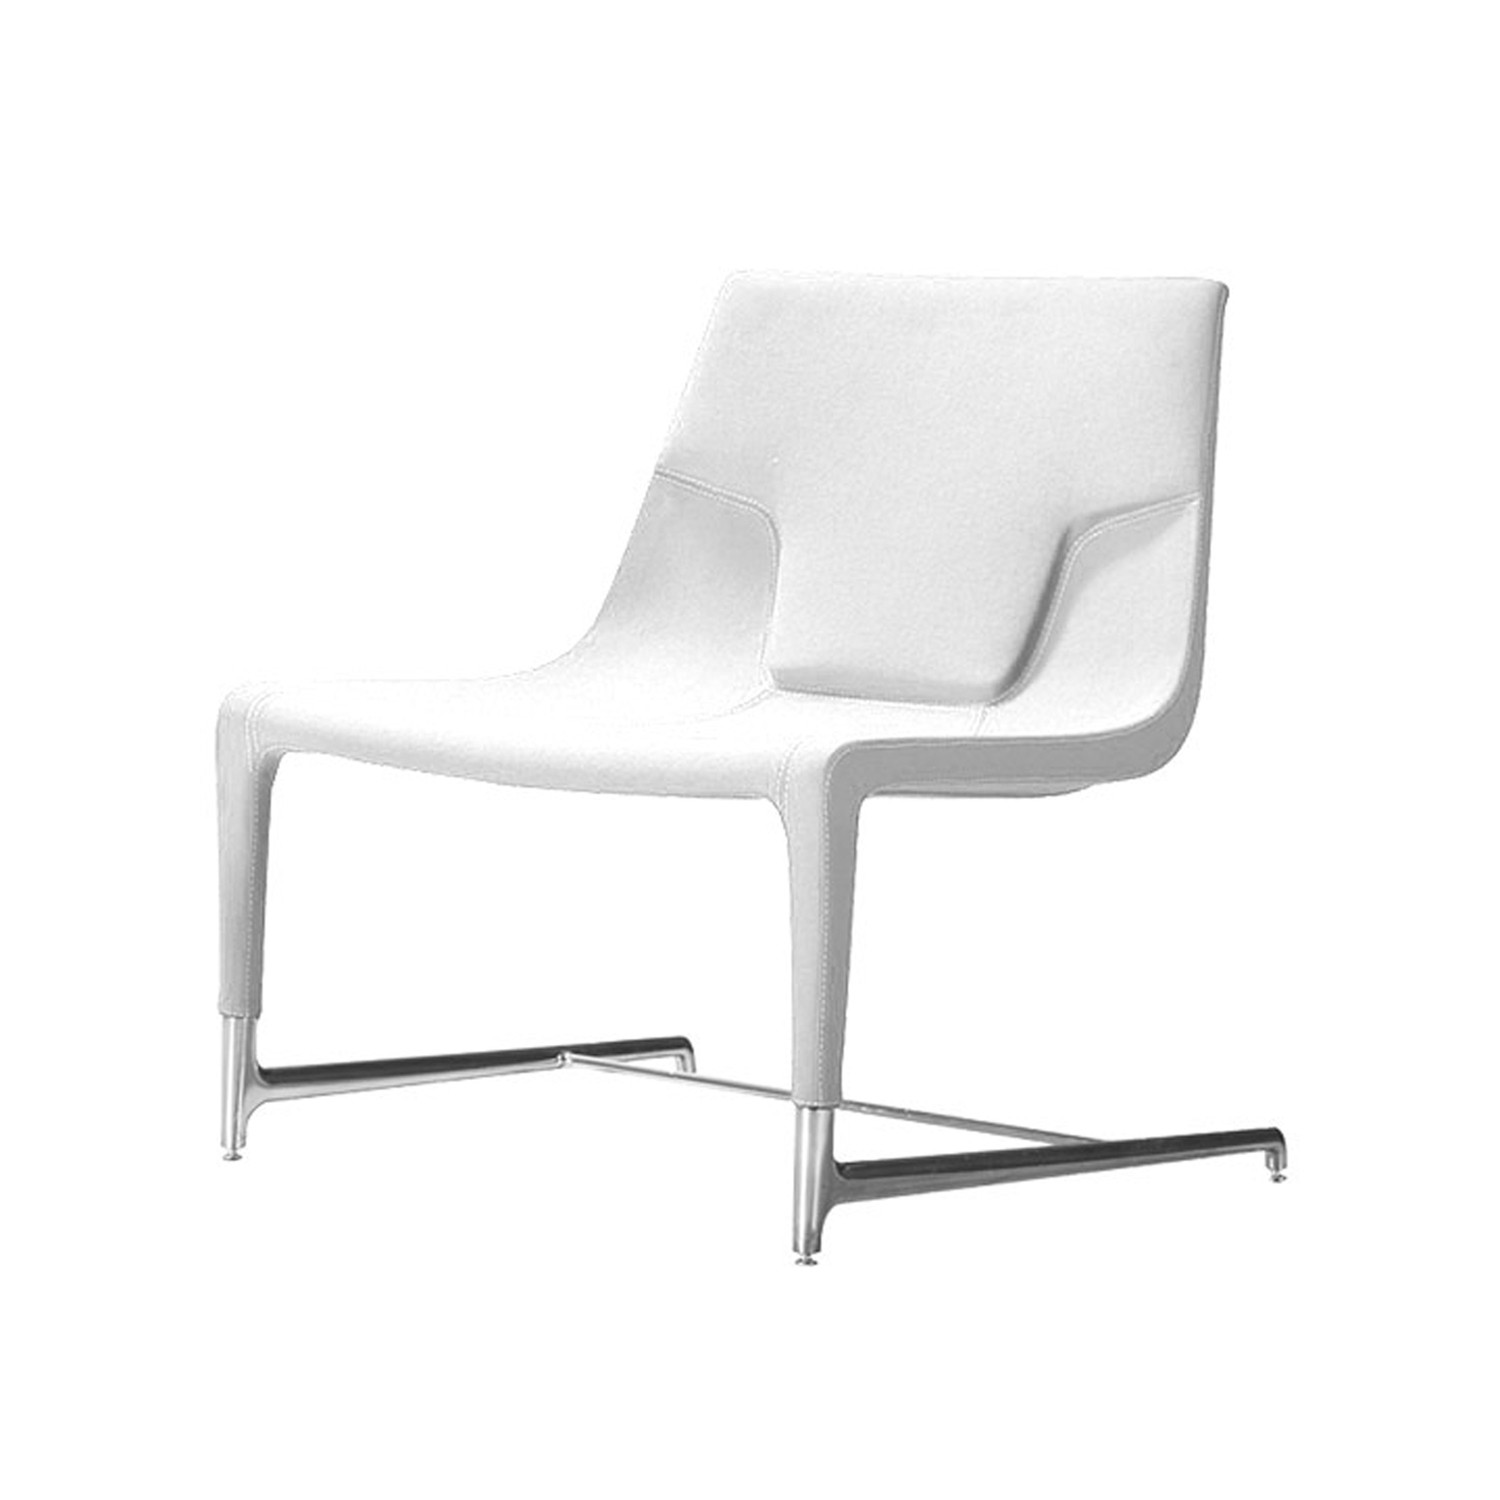 Modena Accent Chair Casabianca Furniture Touch Of Modern